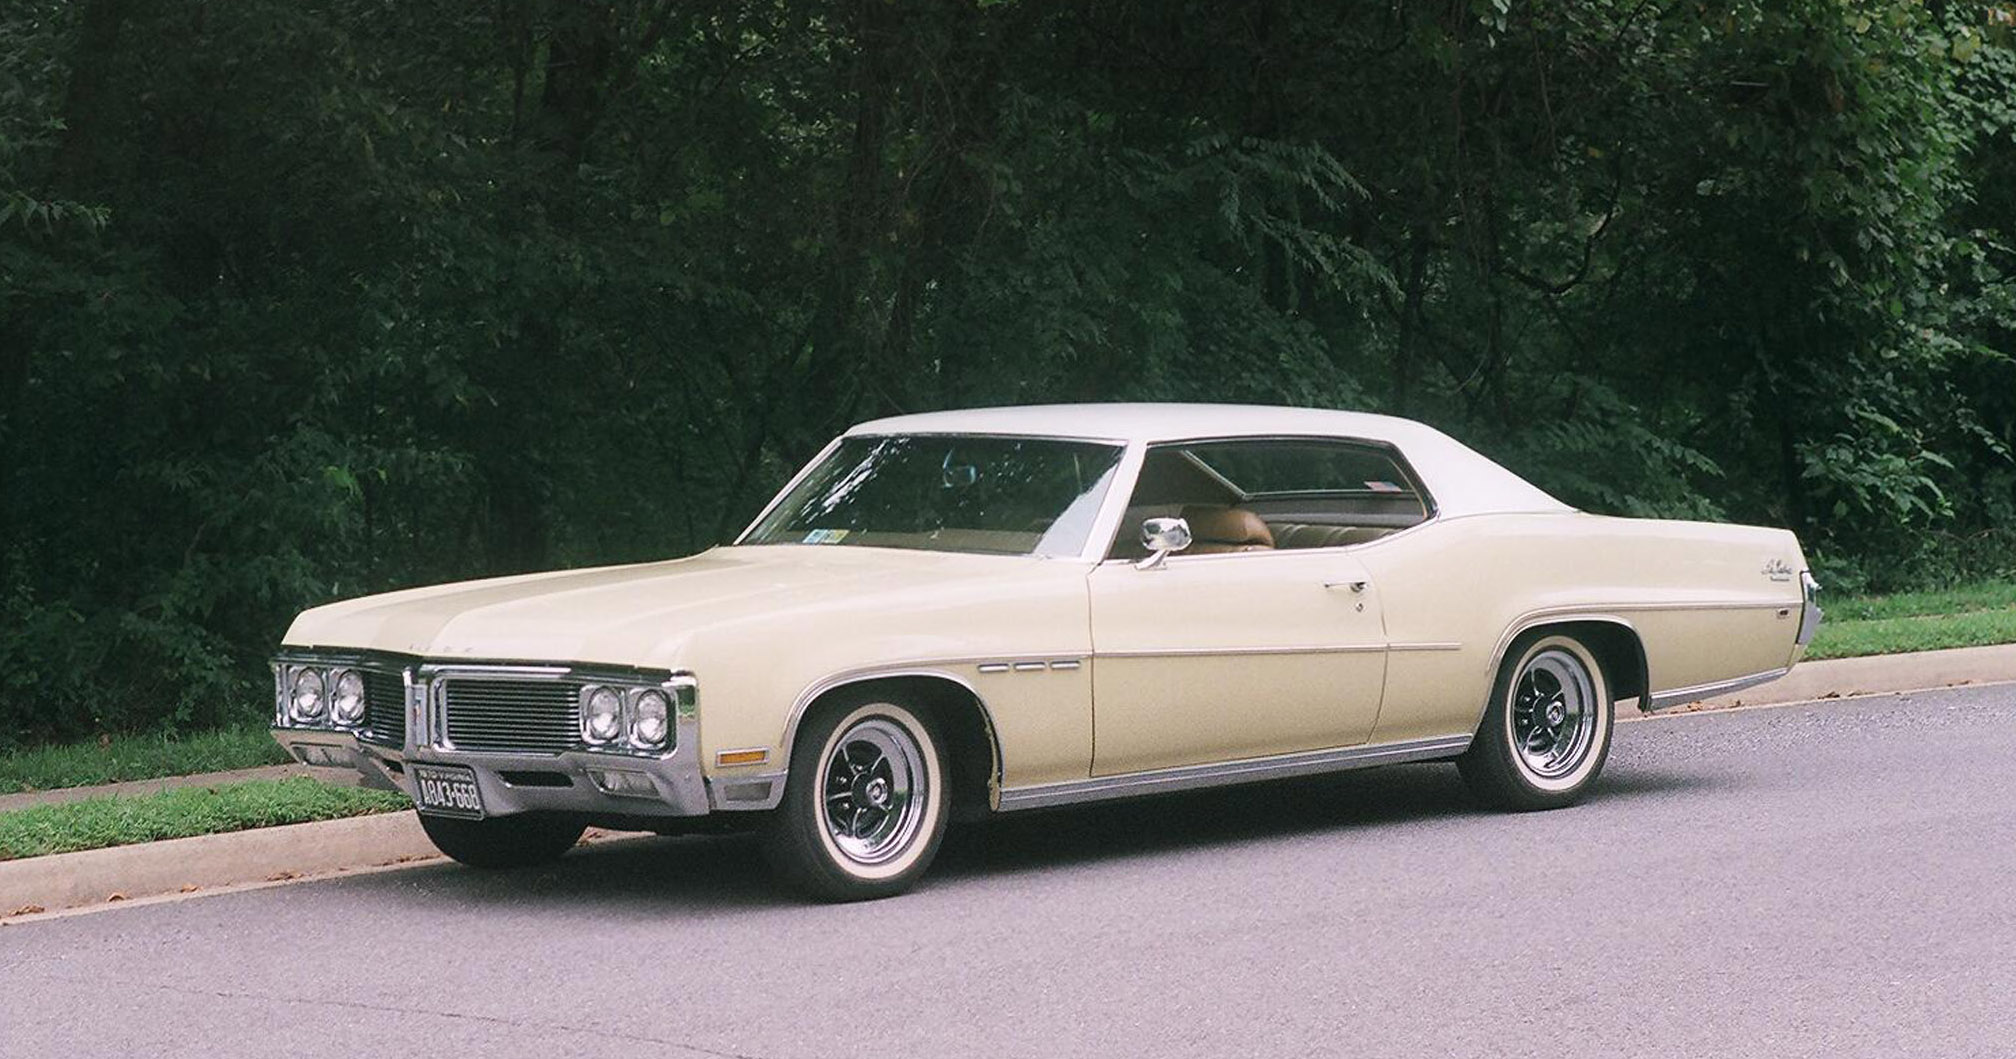 1970 Buick Lesabre Custom Purchased In Pristine Condition